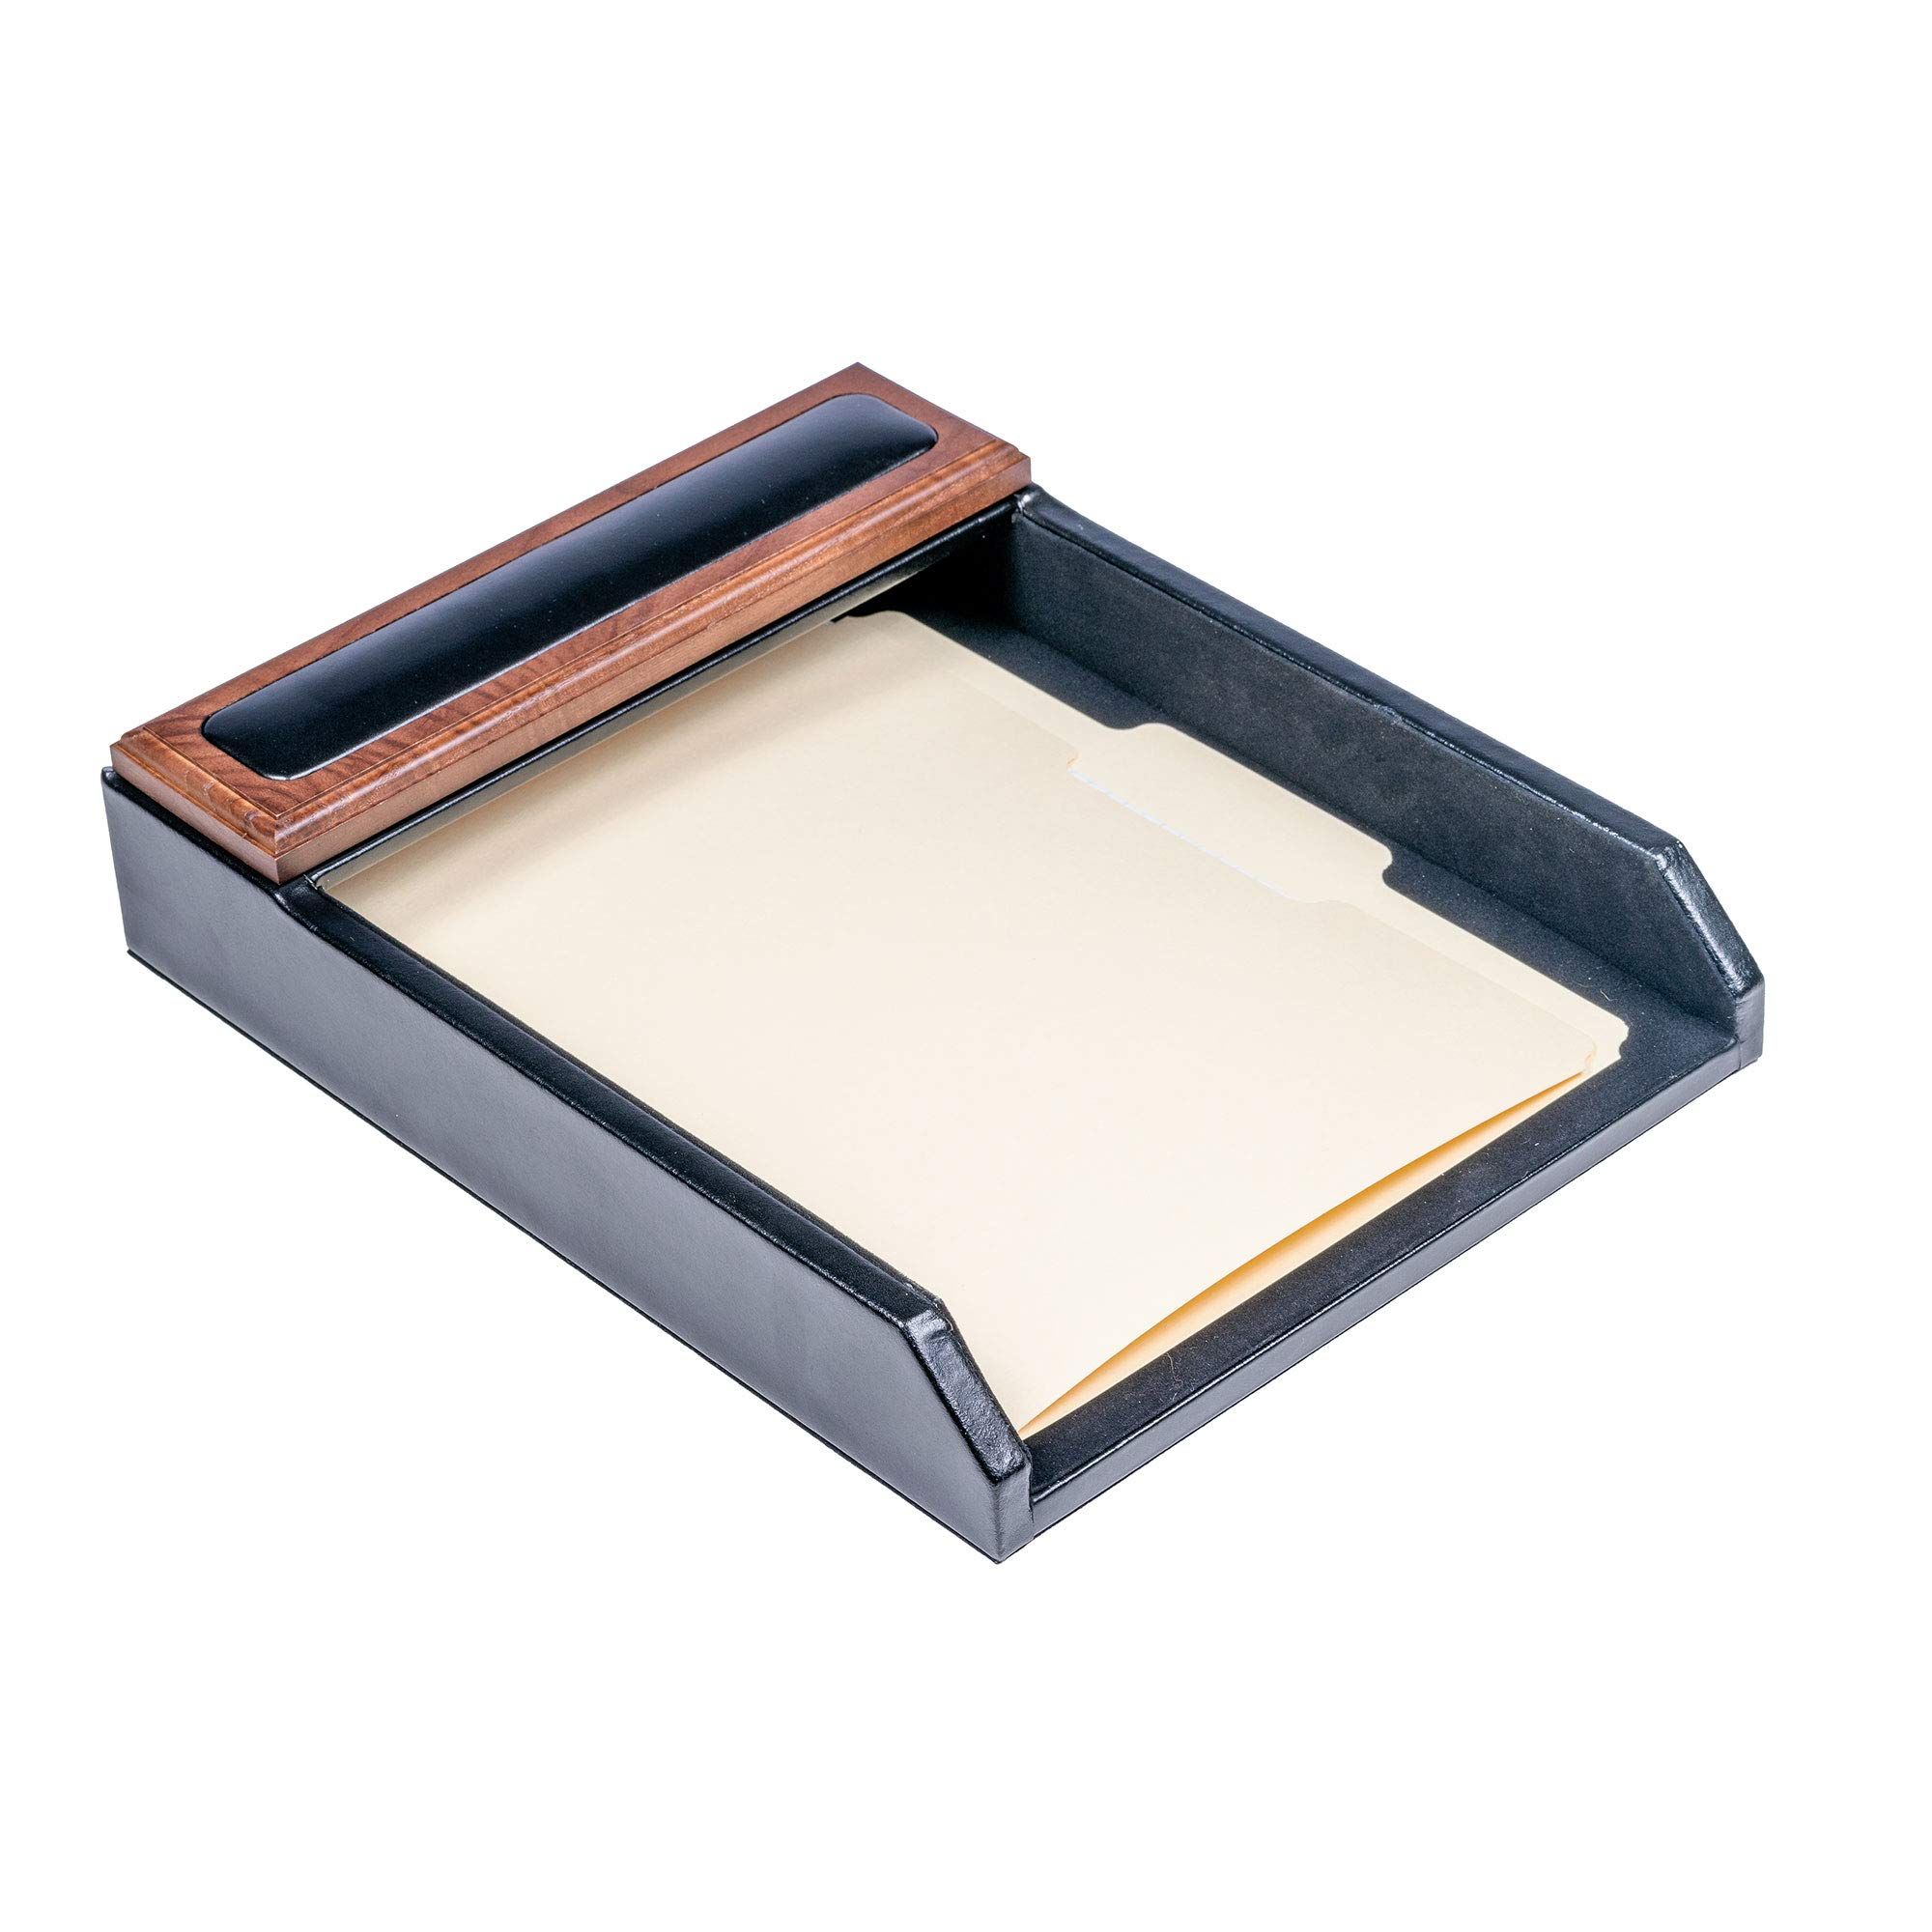 Dacasso Walnut and Leather Letter Tray by Dacasso